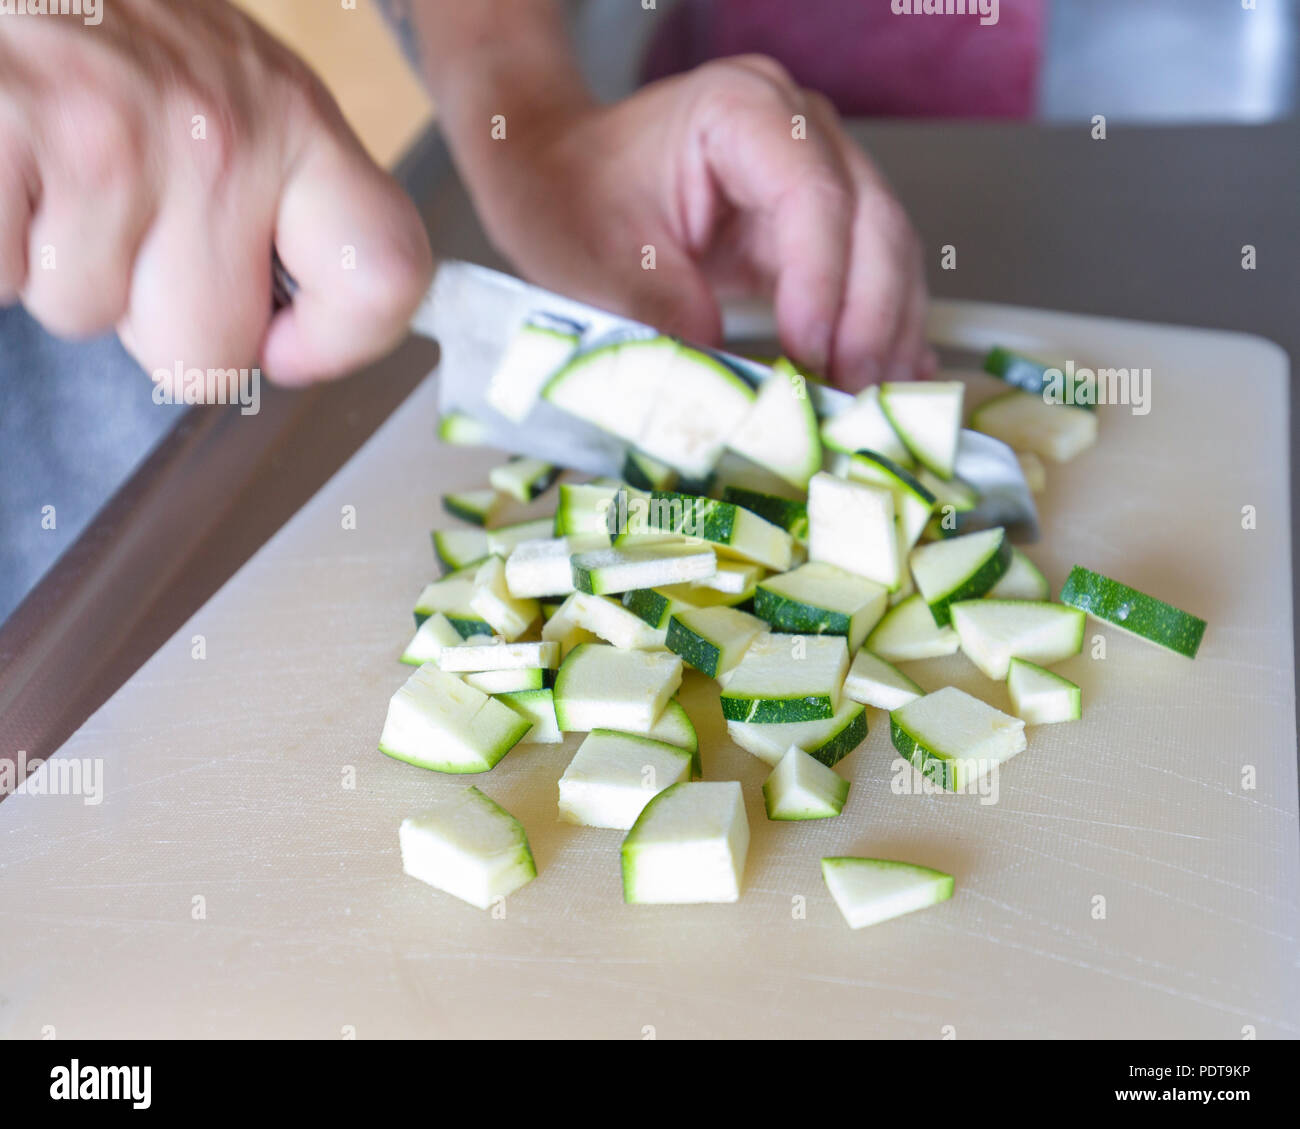 Close up view of person's hands chopping Zucchini aka Courgette with kitchen knife in preparation for dinner meal - Stock Image